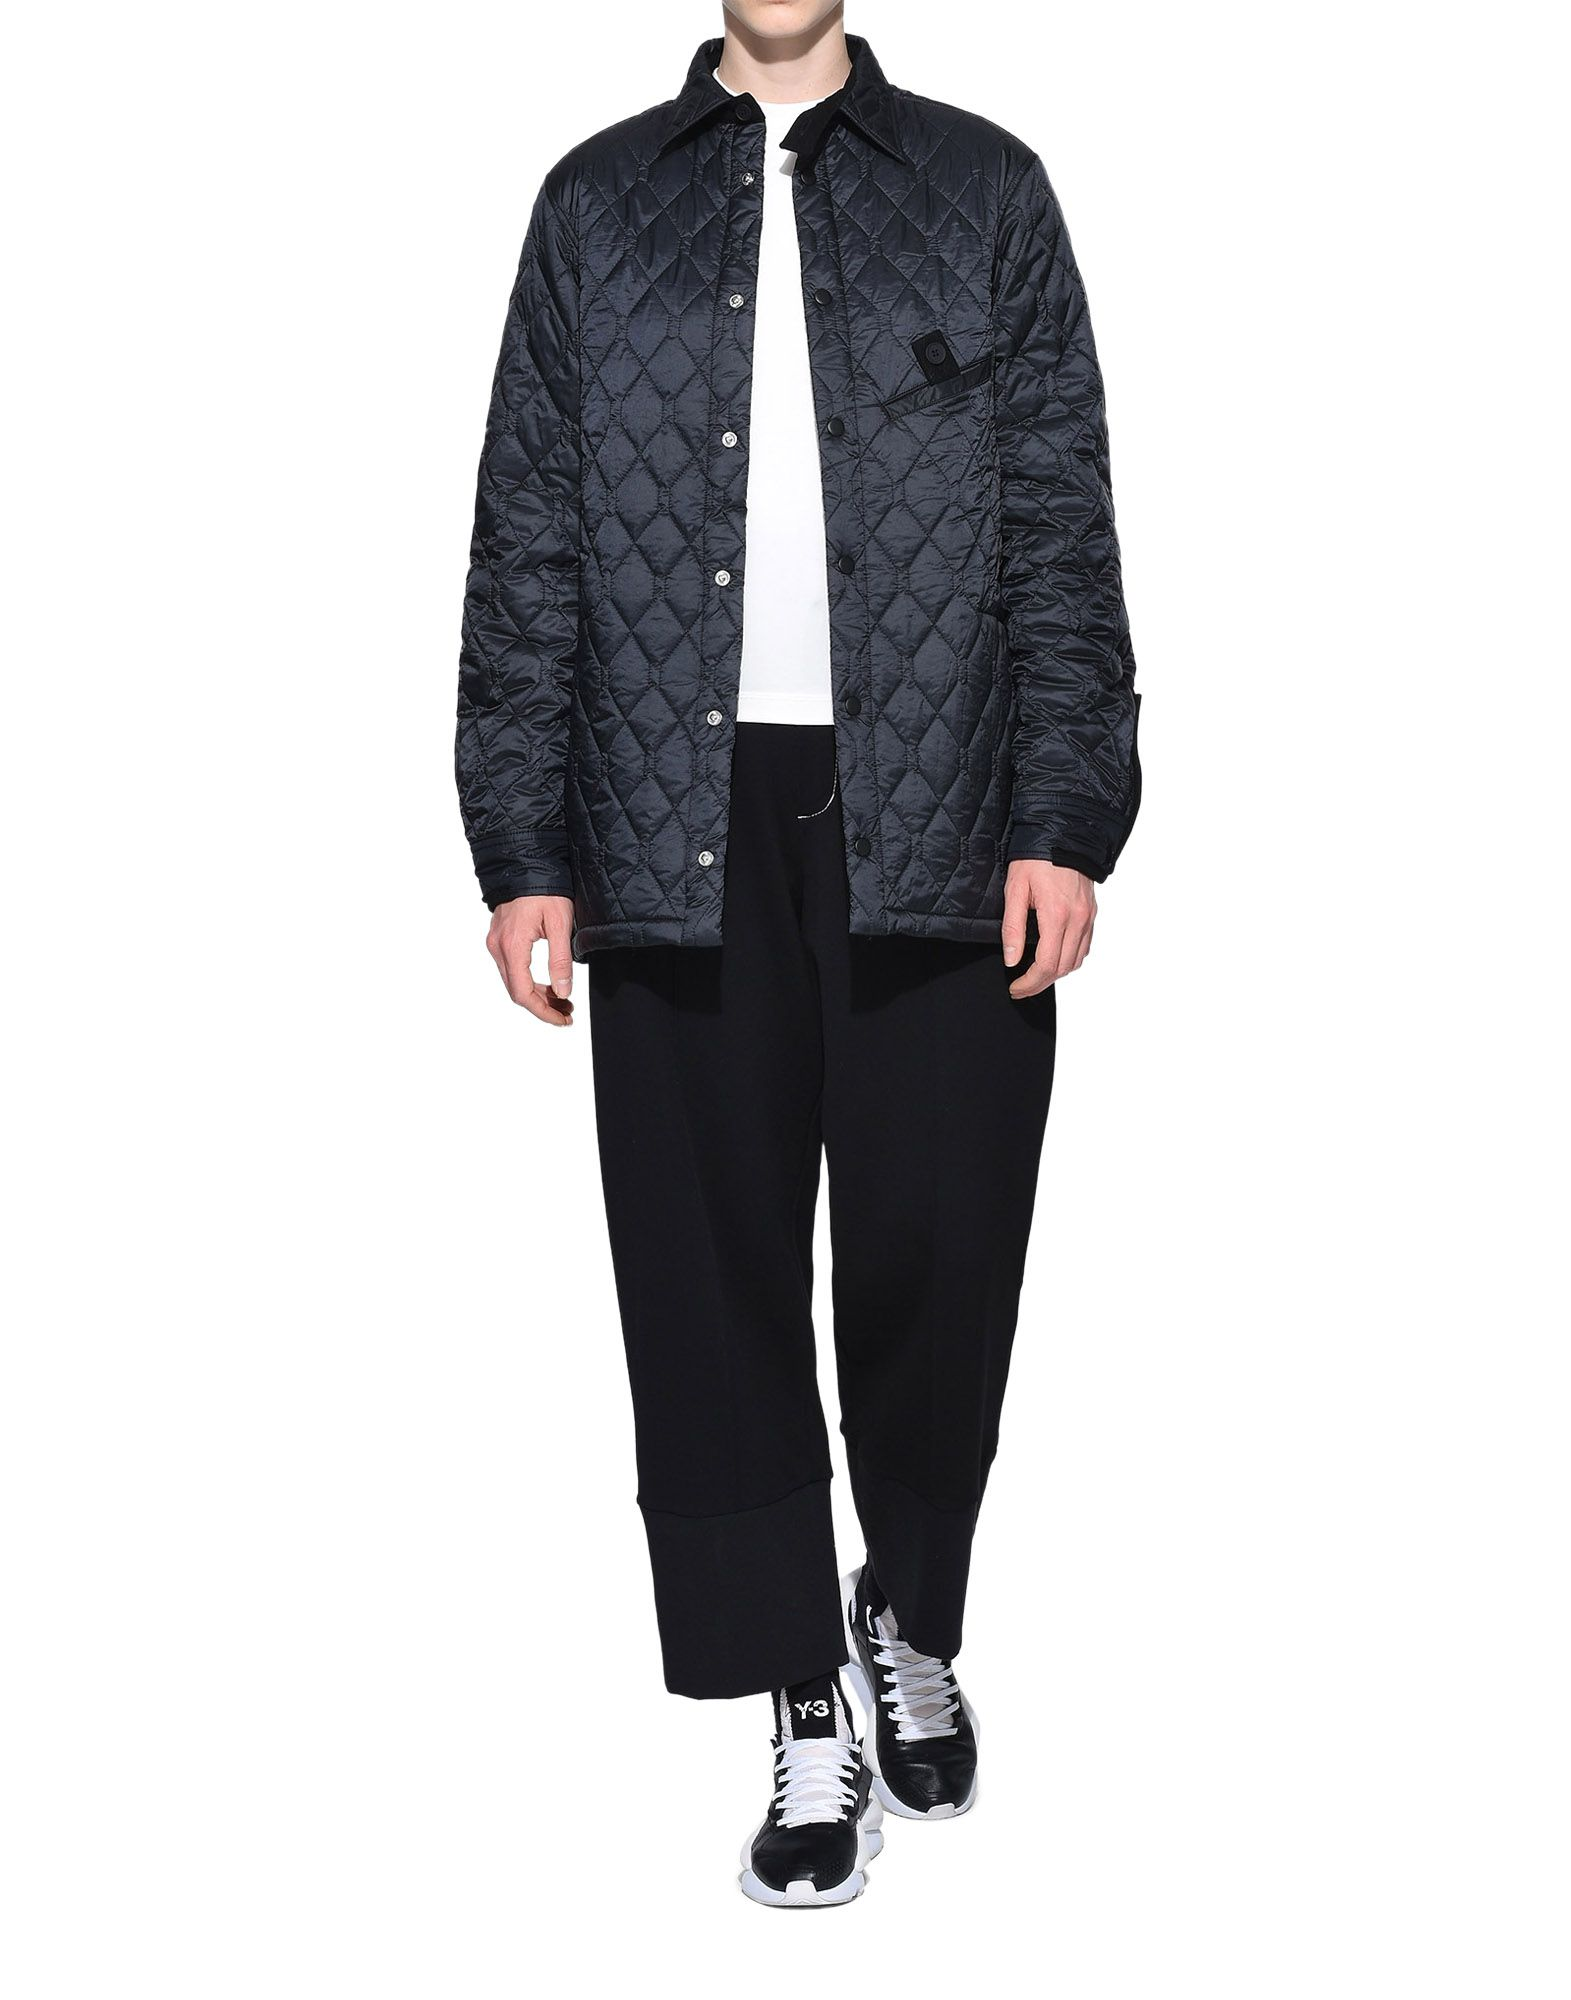 Y-3 Y-3 Quilted Shirt Long sleeve shirt Woman a